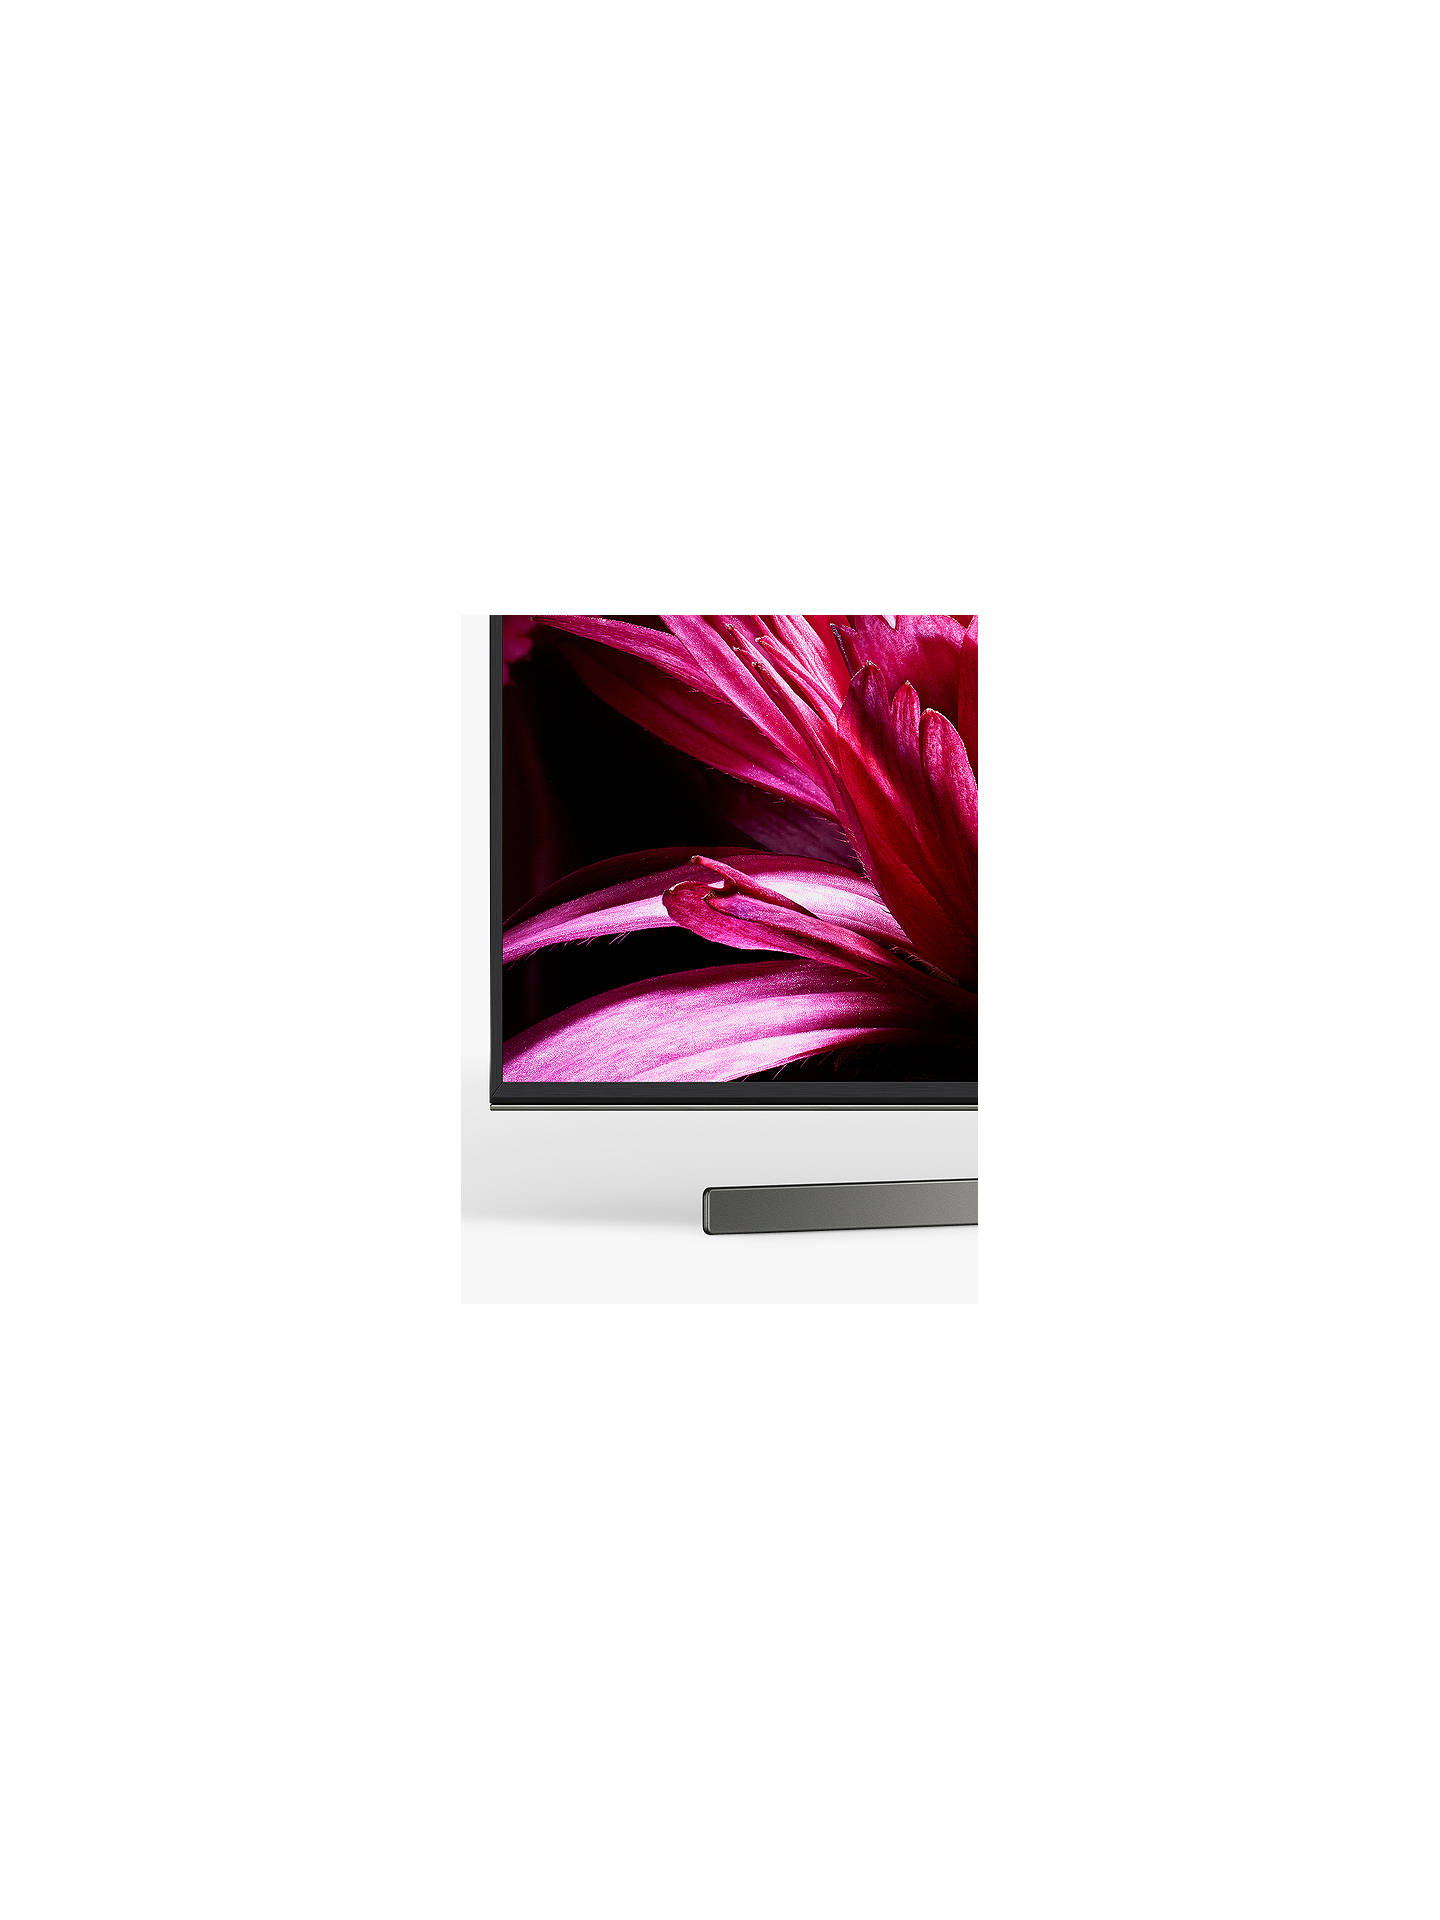 Sony Bravia KD65XG9505 (2019) LED HDR 4K Ultra HD Smart Android TV, 65